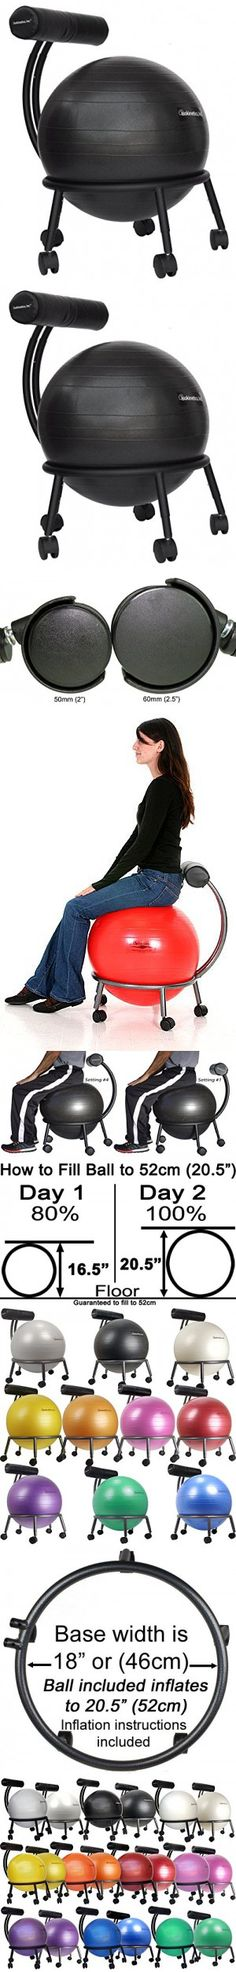 """Isokinetics Inc. Brand Fitness Ball Chair - Solid Black Metal Frame Finish - Exclusive: 60mm (2.5"""") Wheels - Adjustable Base and Back Height - with Black 55cm Ball and a Pump"""